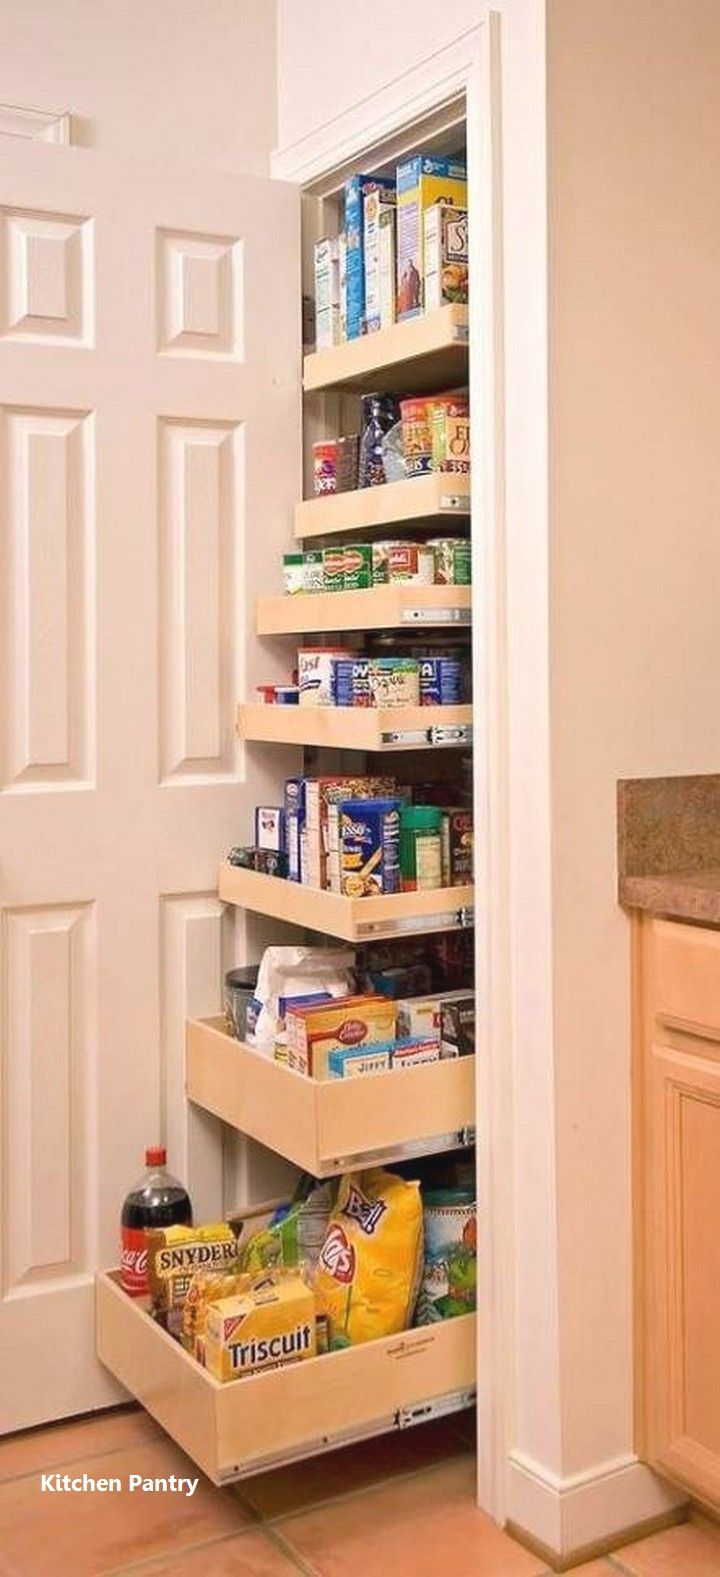 New Kitchen Pantry Ideas In 2020 Space Saving Kitchen Pantry Design Pantry Shelving